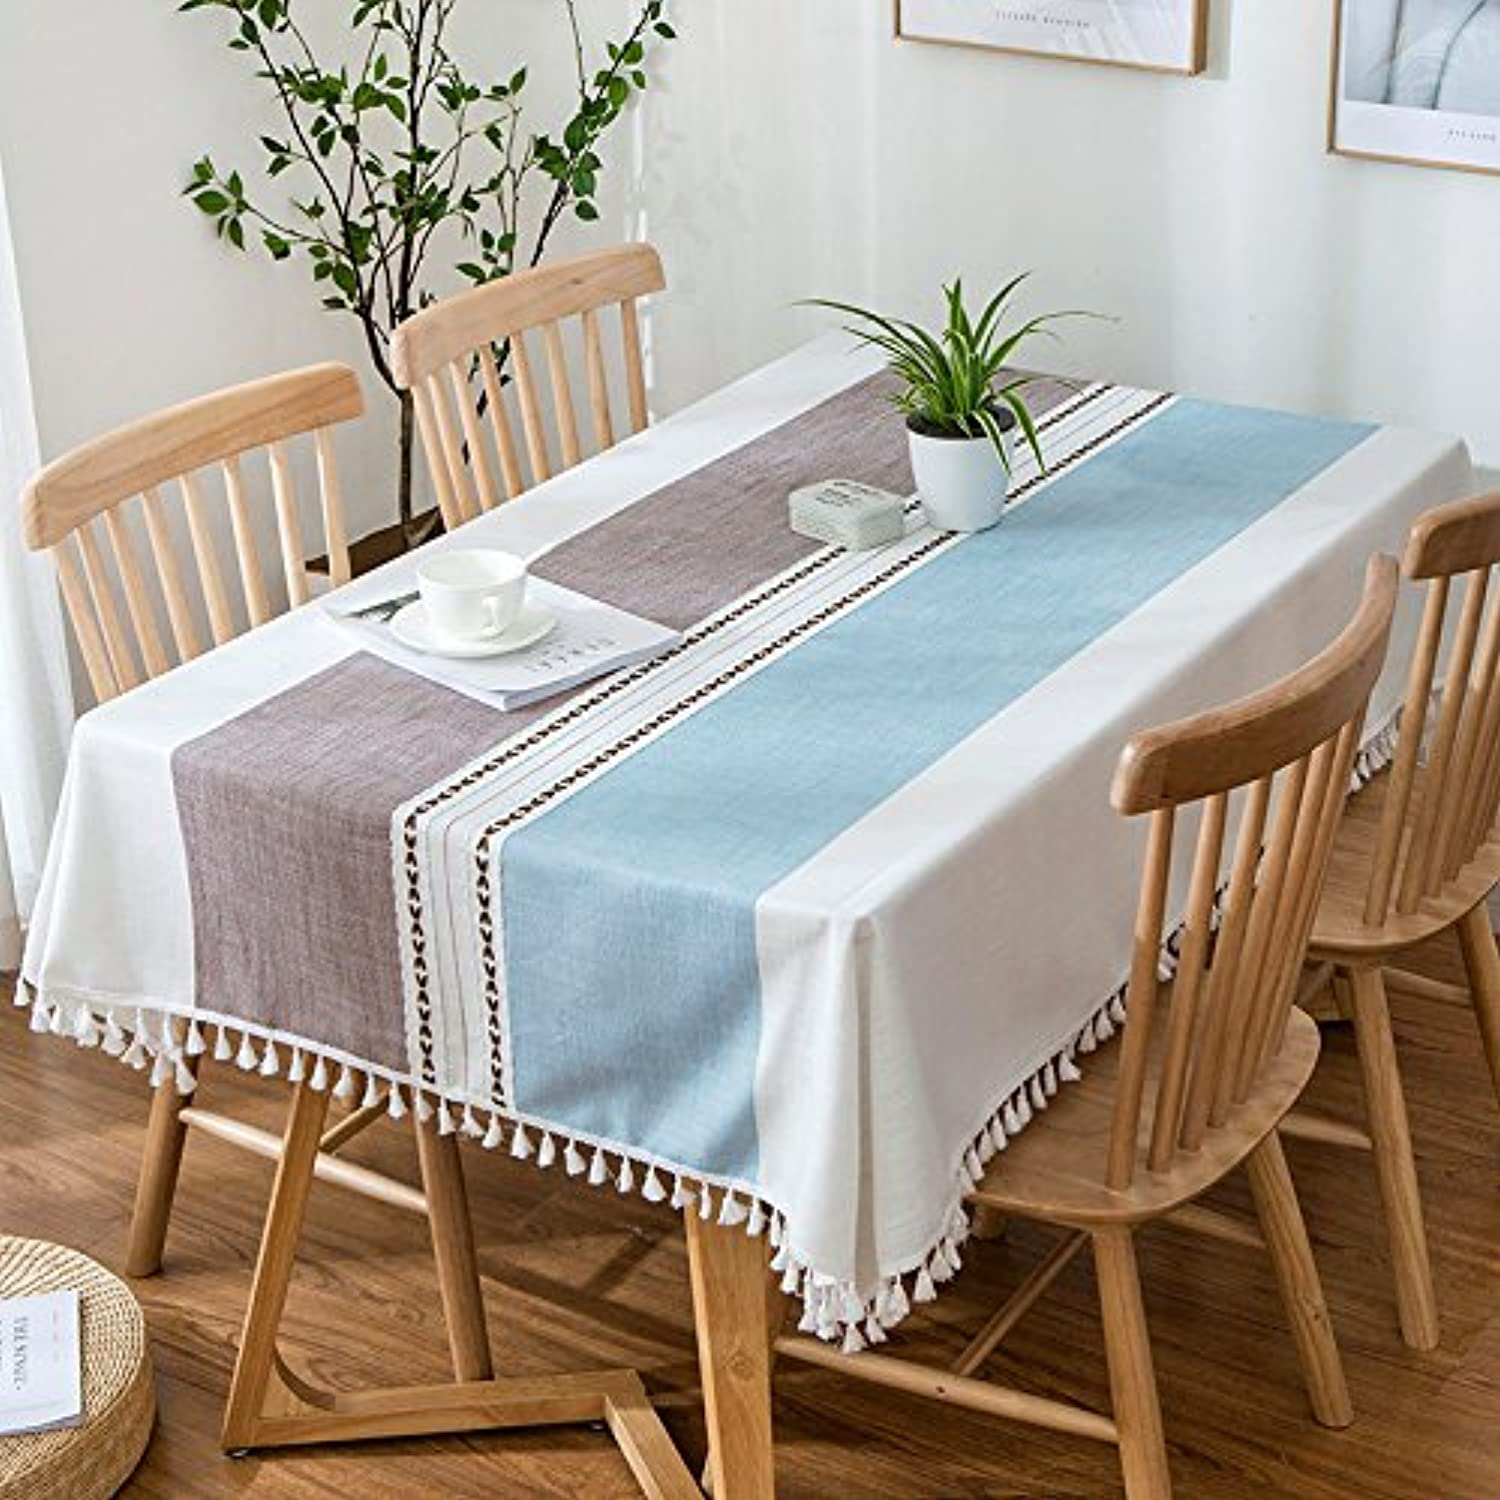 Creek Ywh Nordic minimalist ins small fresh cotton linen tablecloth tablecloth coffee table cover cloth stripes, color strips  bluee coffee strips (tassel side), 140220cm